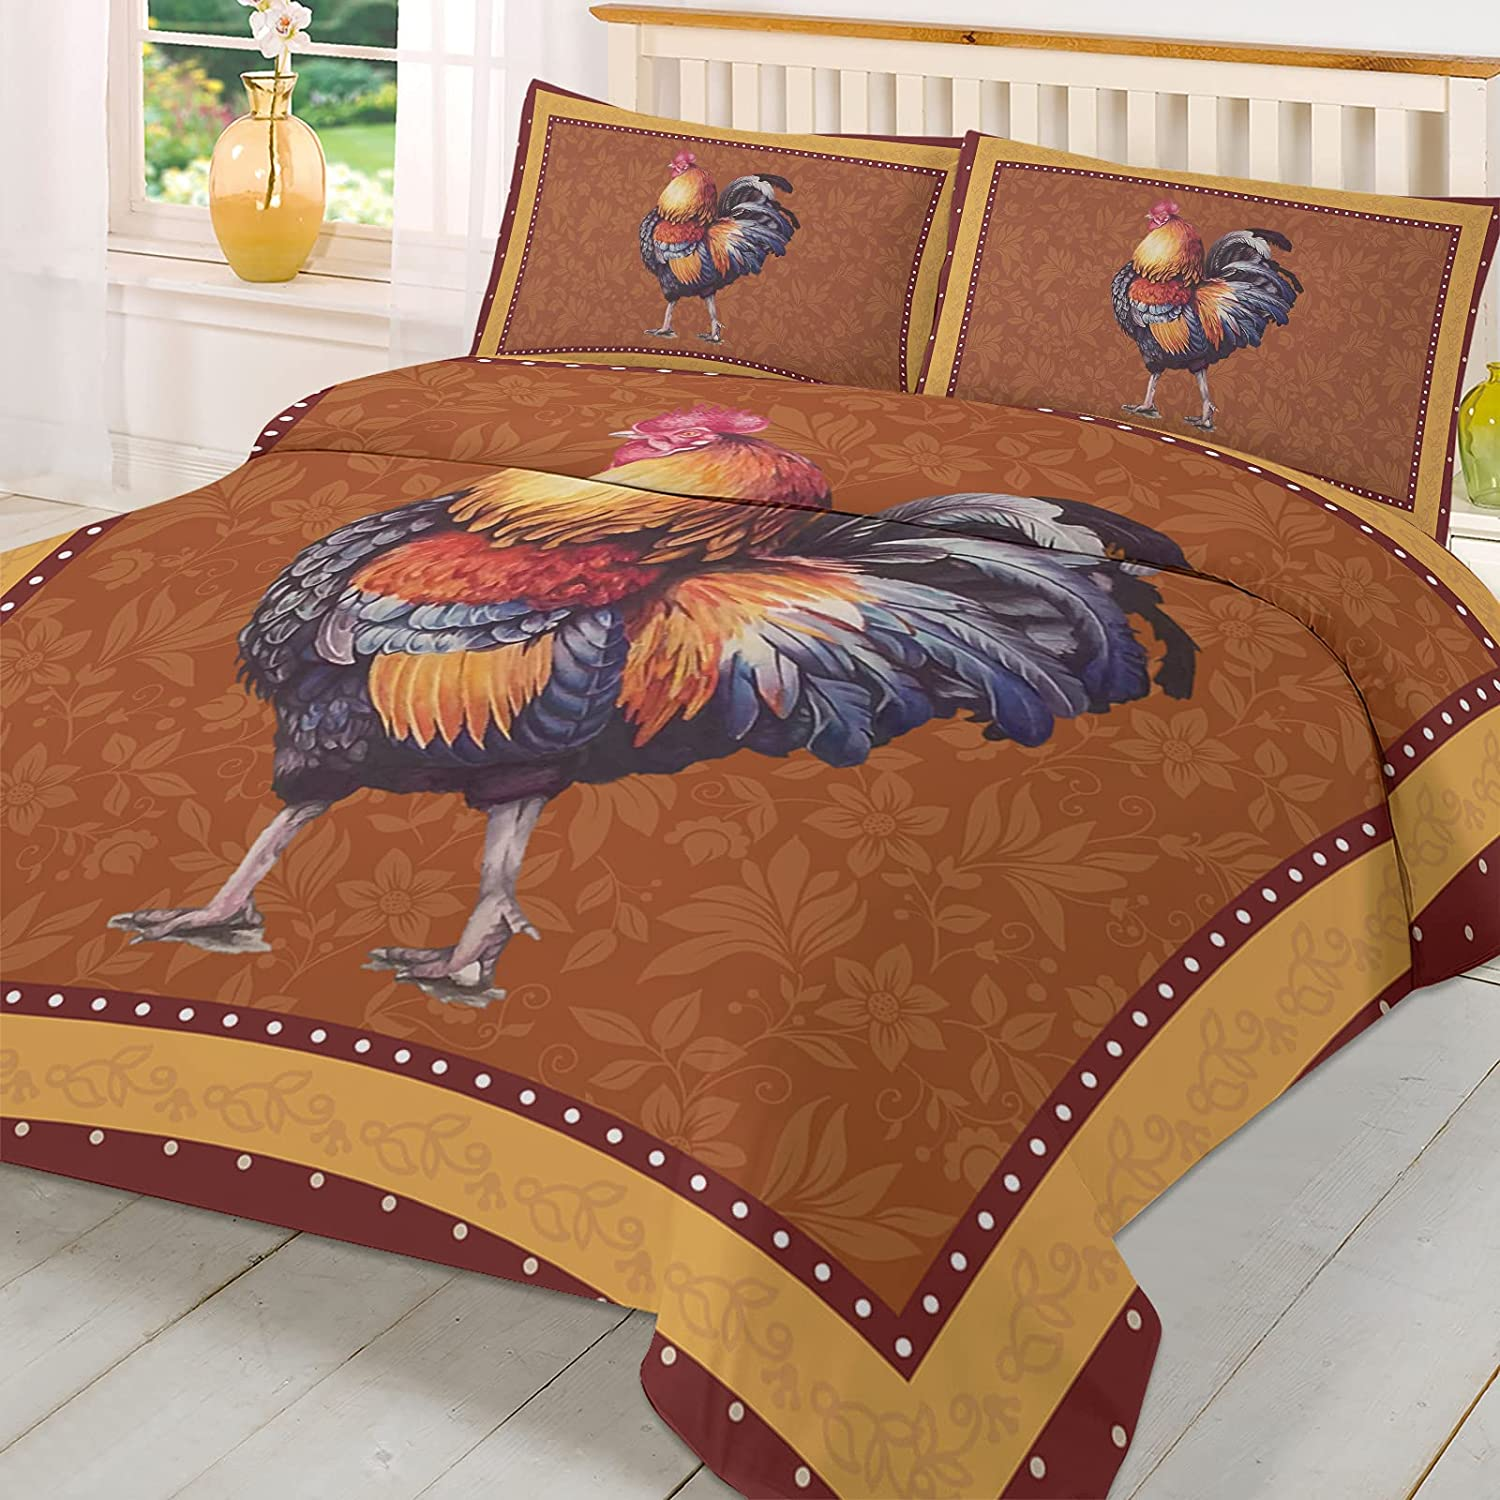 Duvet Cover Max 84% OFF Set Twin 5 ☆ popular Size Bedding 1 an Piece 3